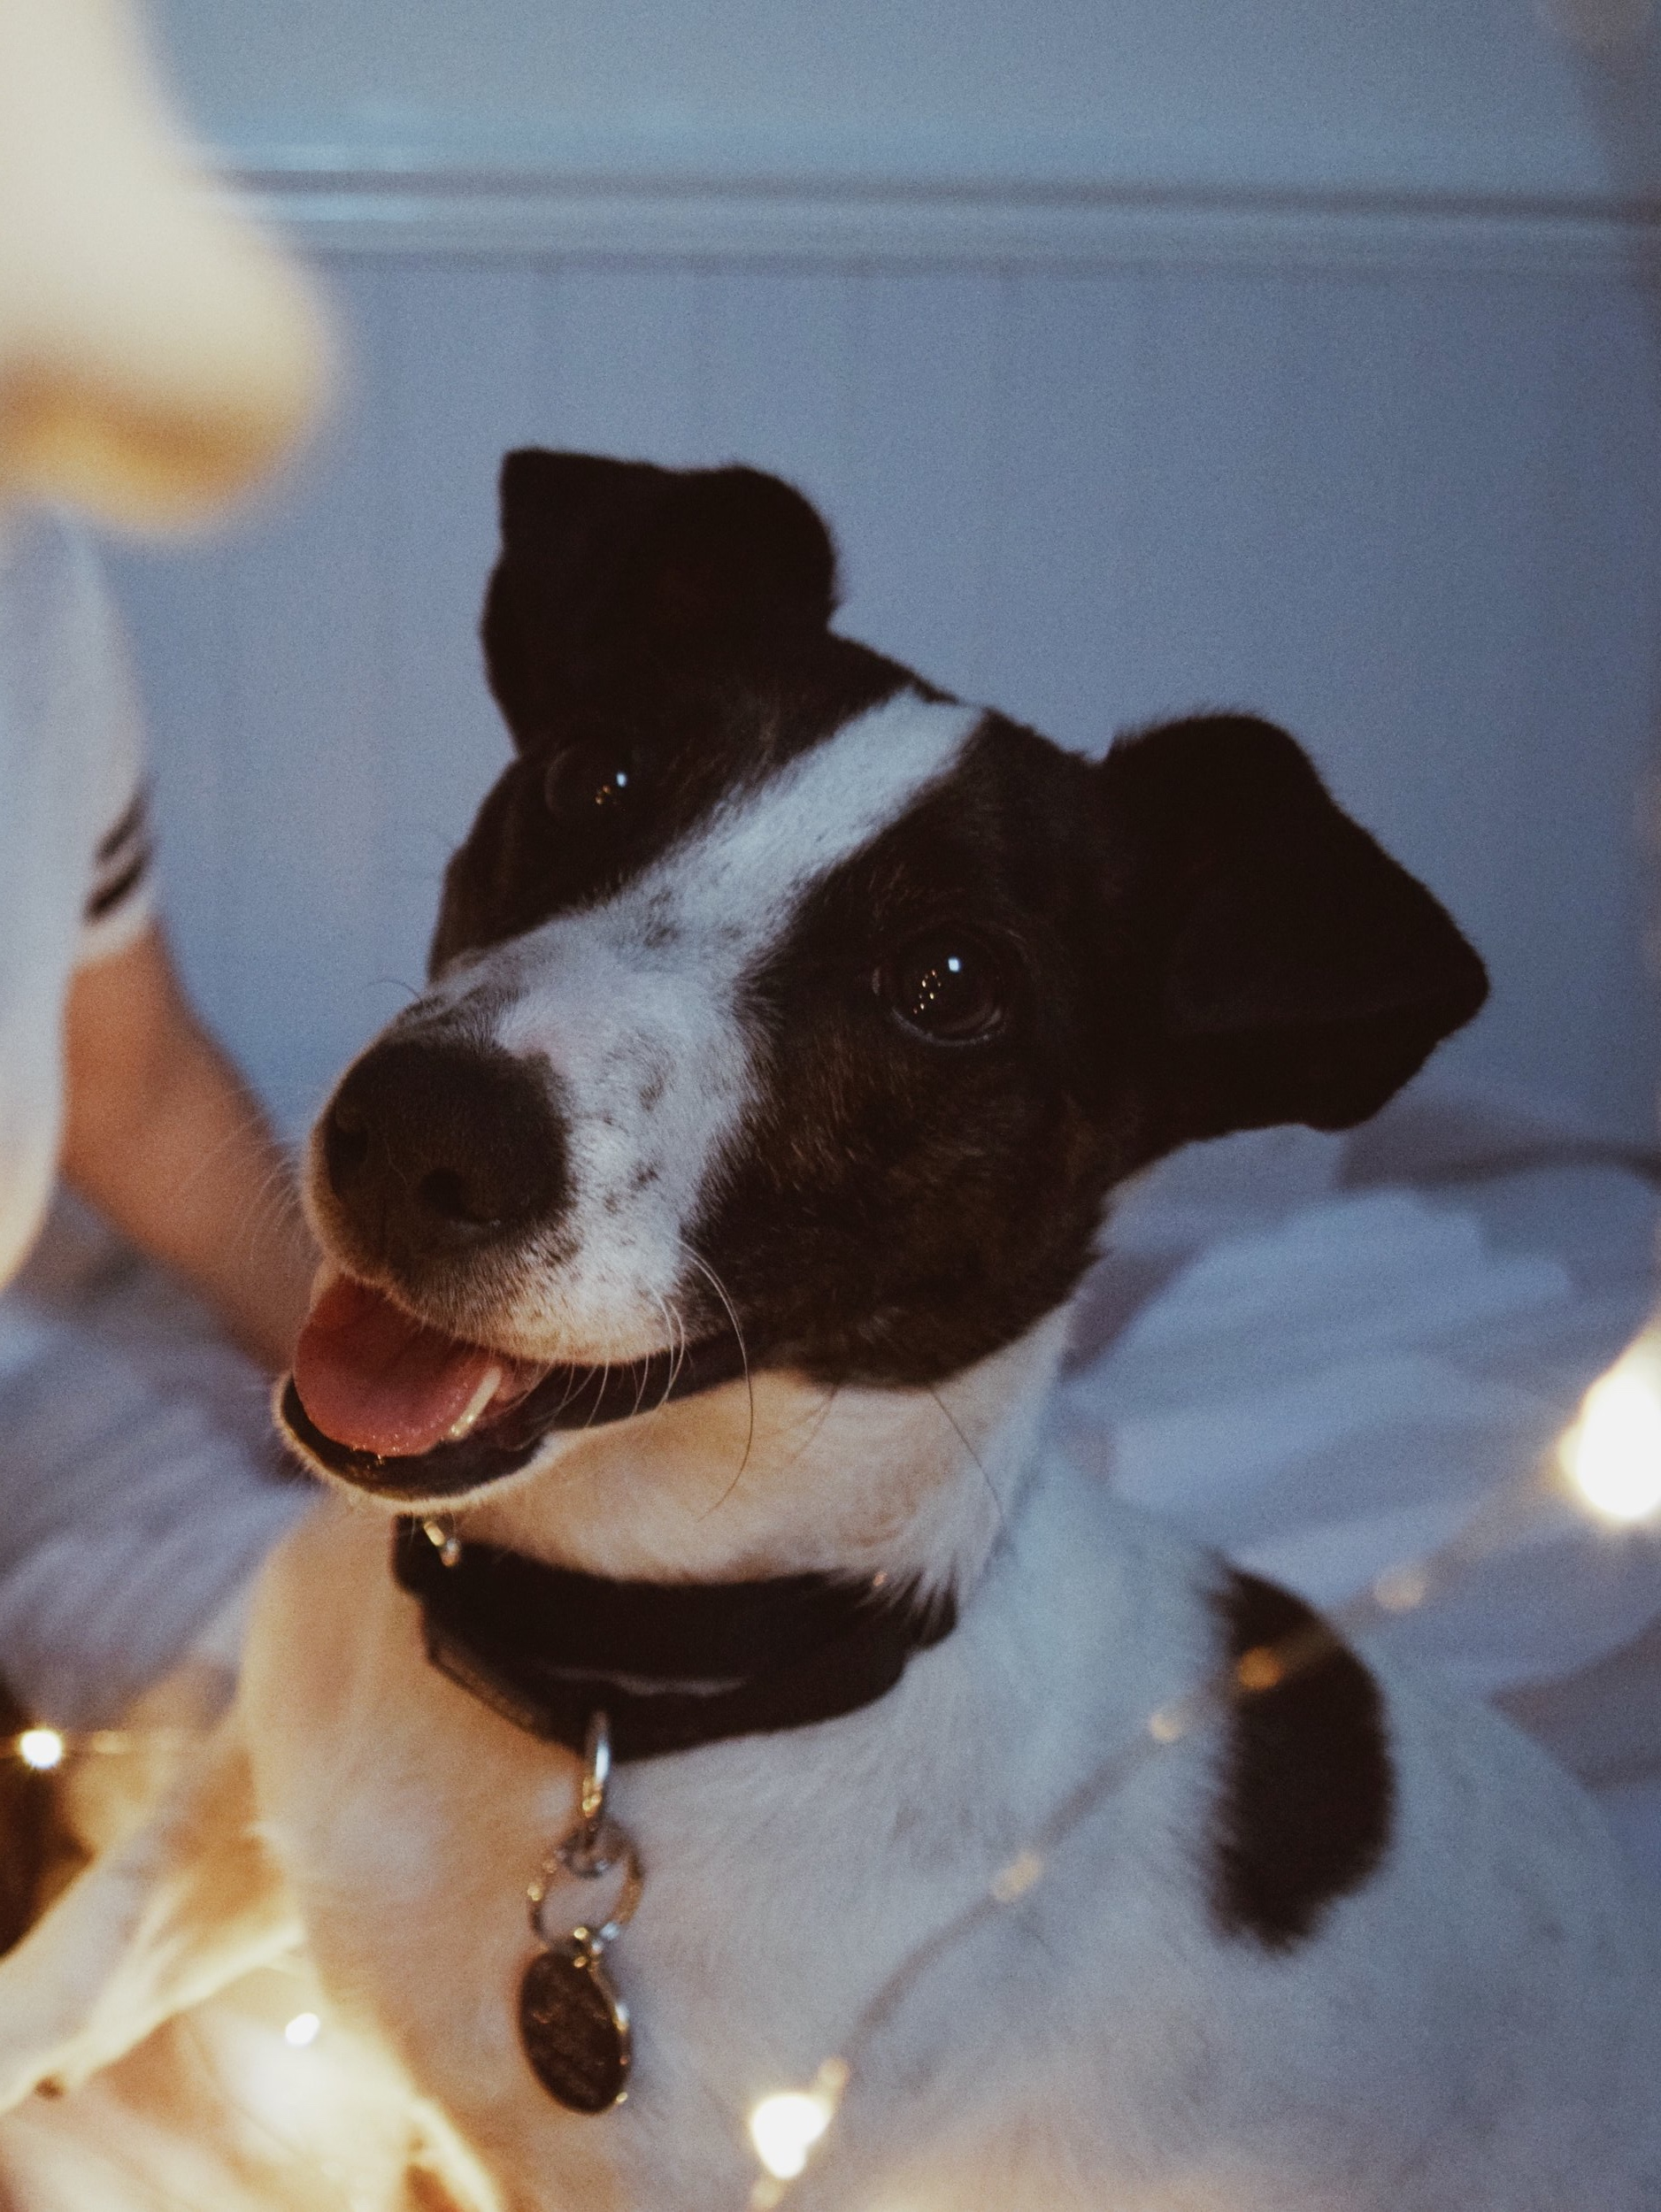 We are now the proud owners of Matisse, our lovely Jack Russell. He's a rescue dog from the fantastic charity, Rain Rescue. We were fortunate enough to be able to adopt him and welcome him to his forever home and now he's a wonderful, much loved member of the family.